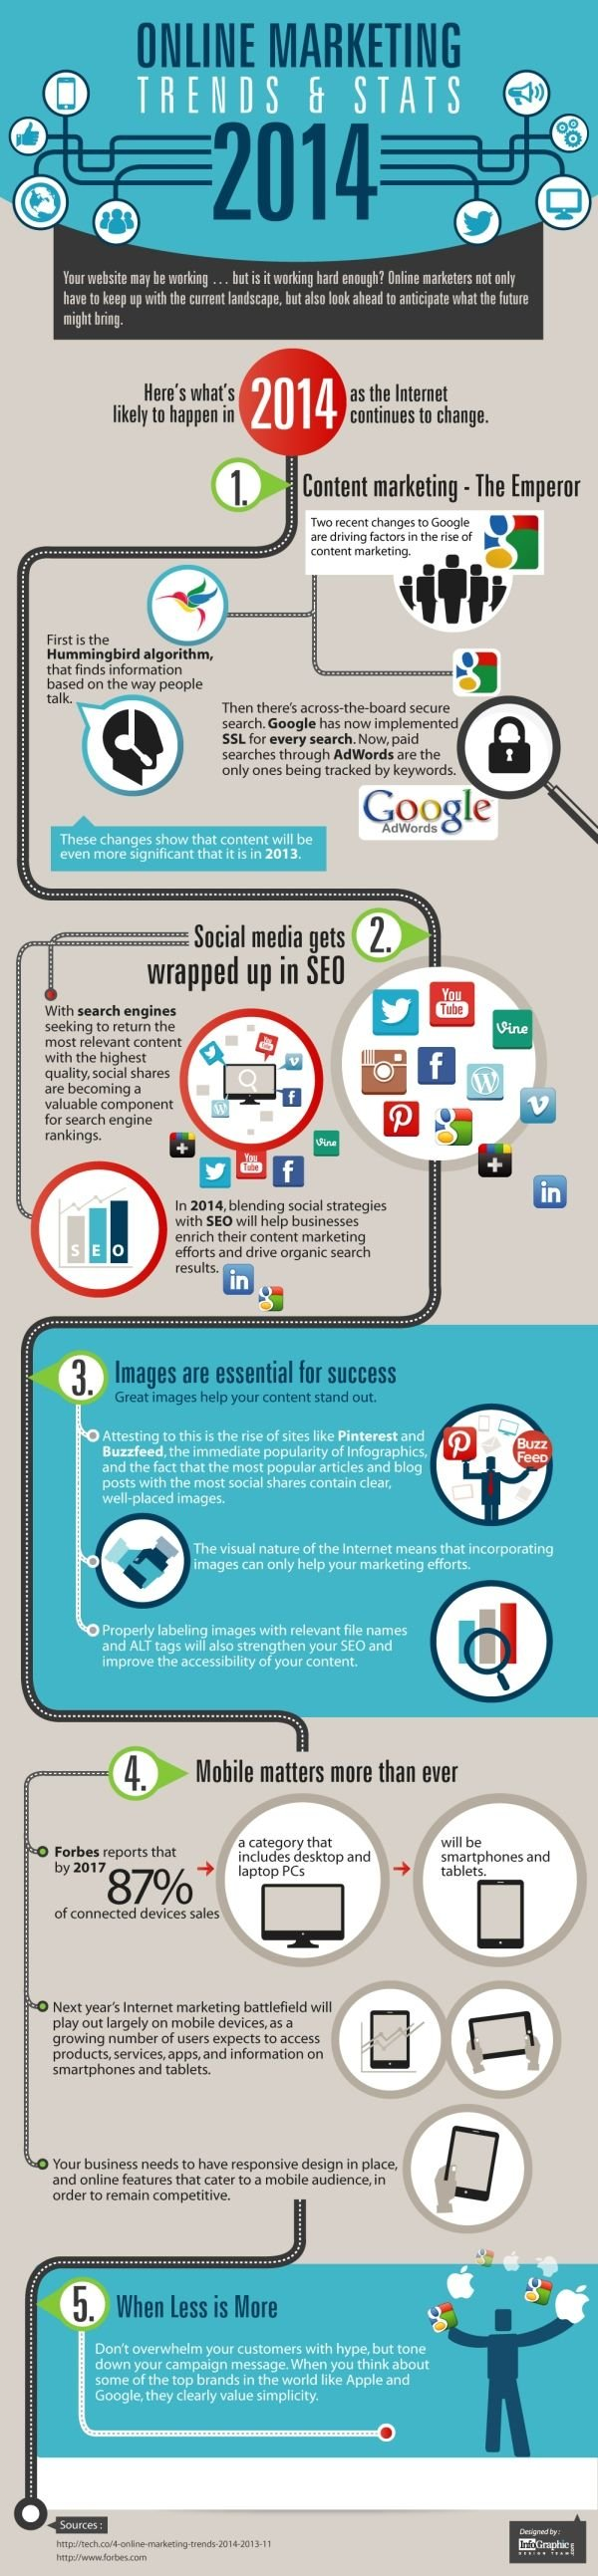 Online Marketing Trends and Stats 2014 #infographic